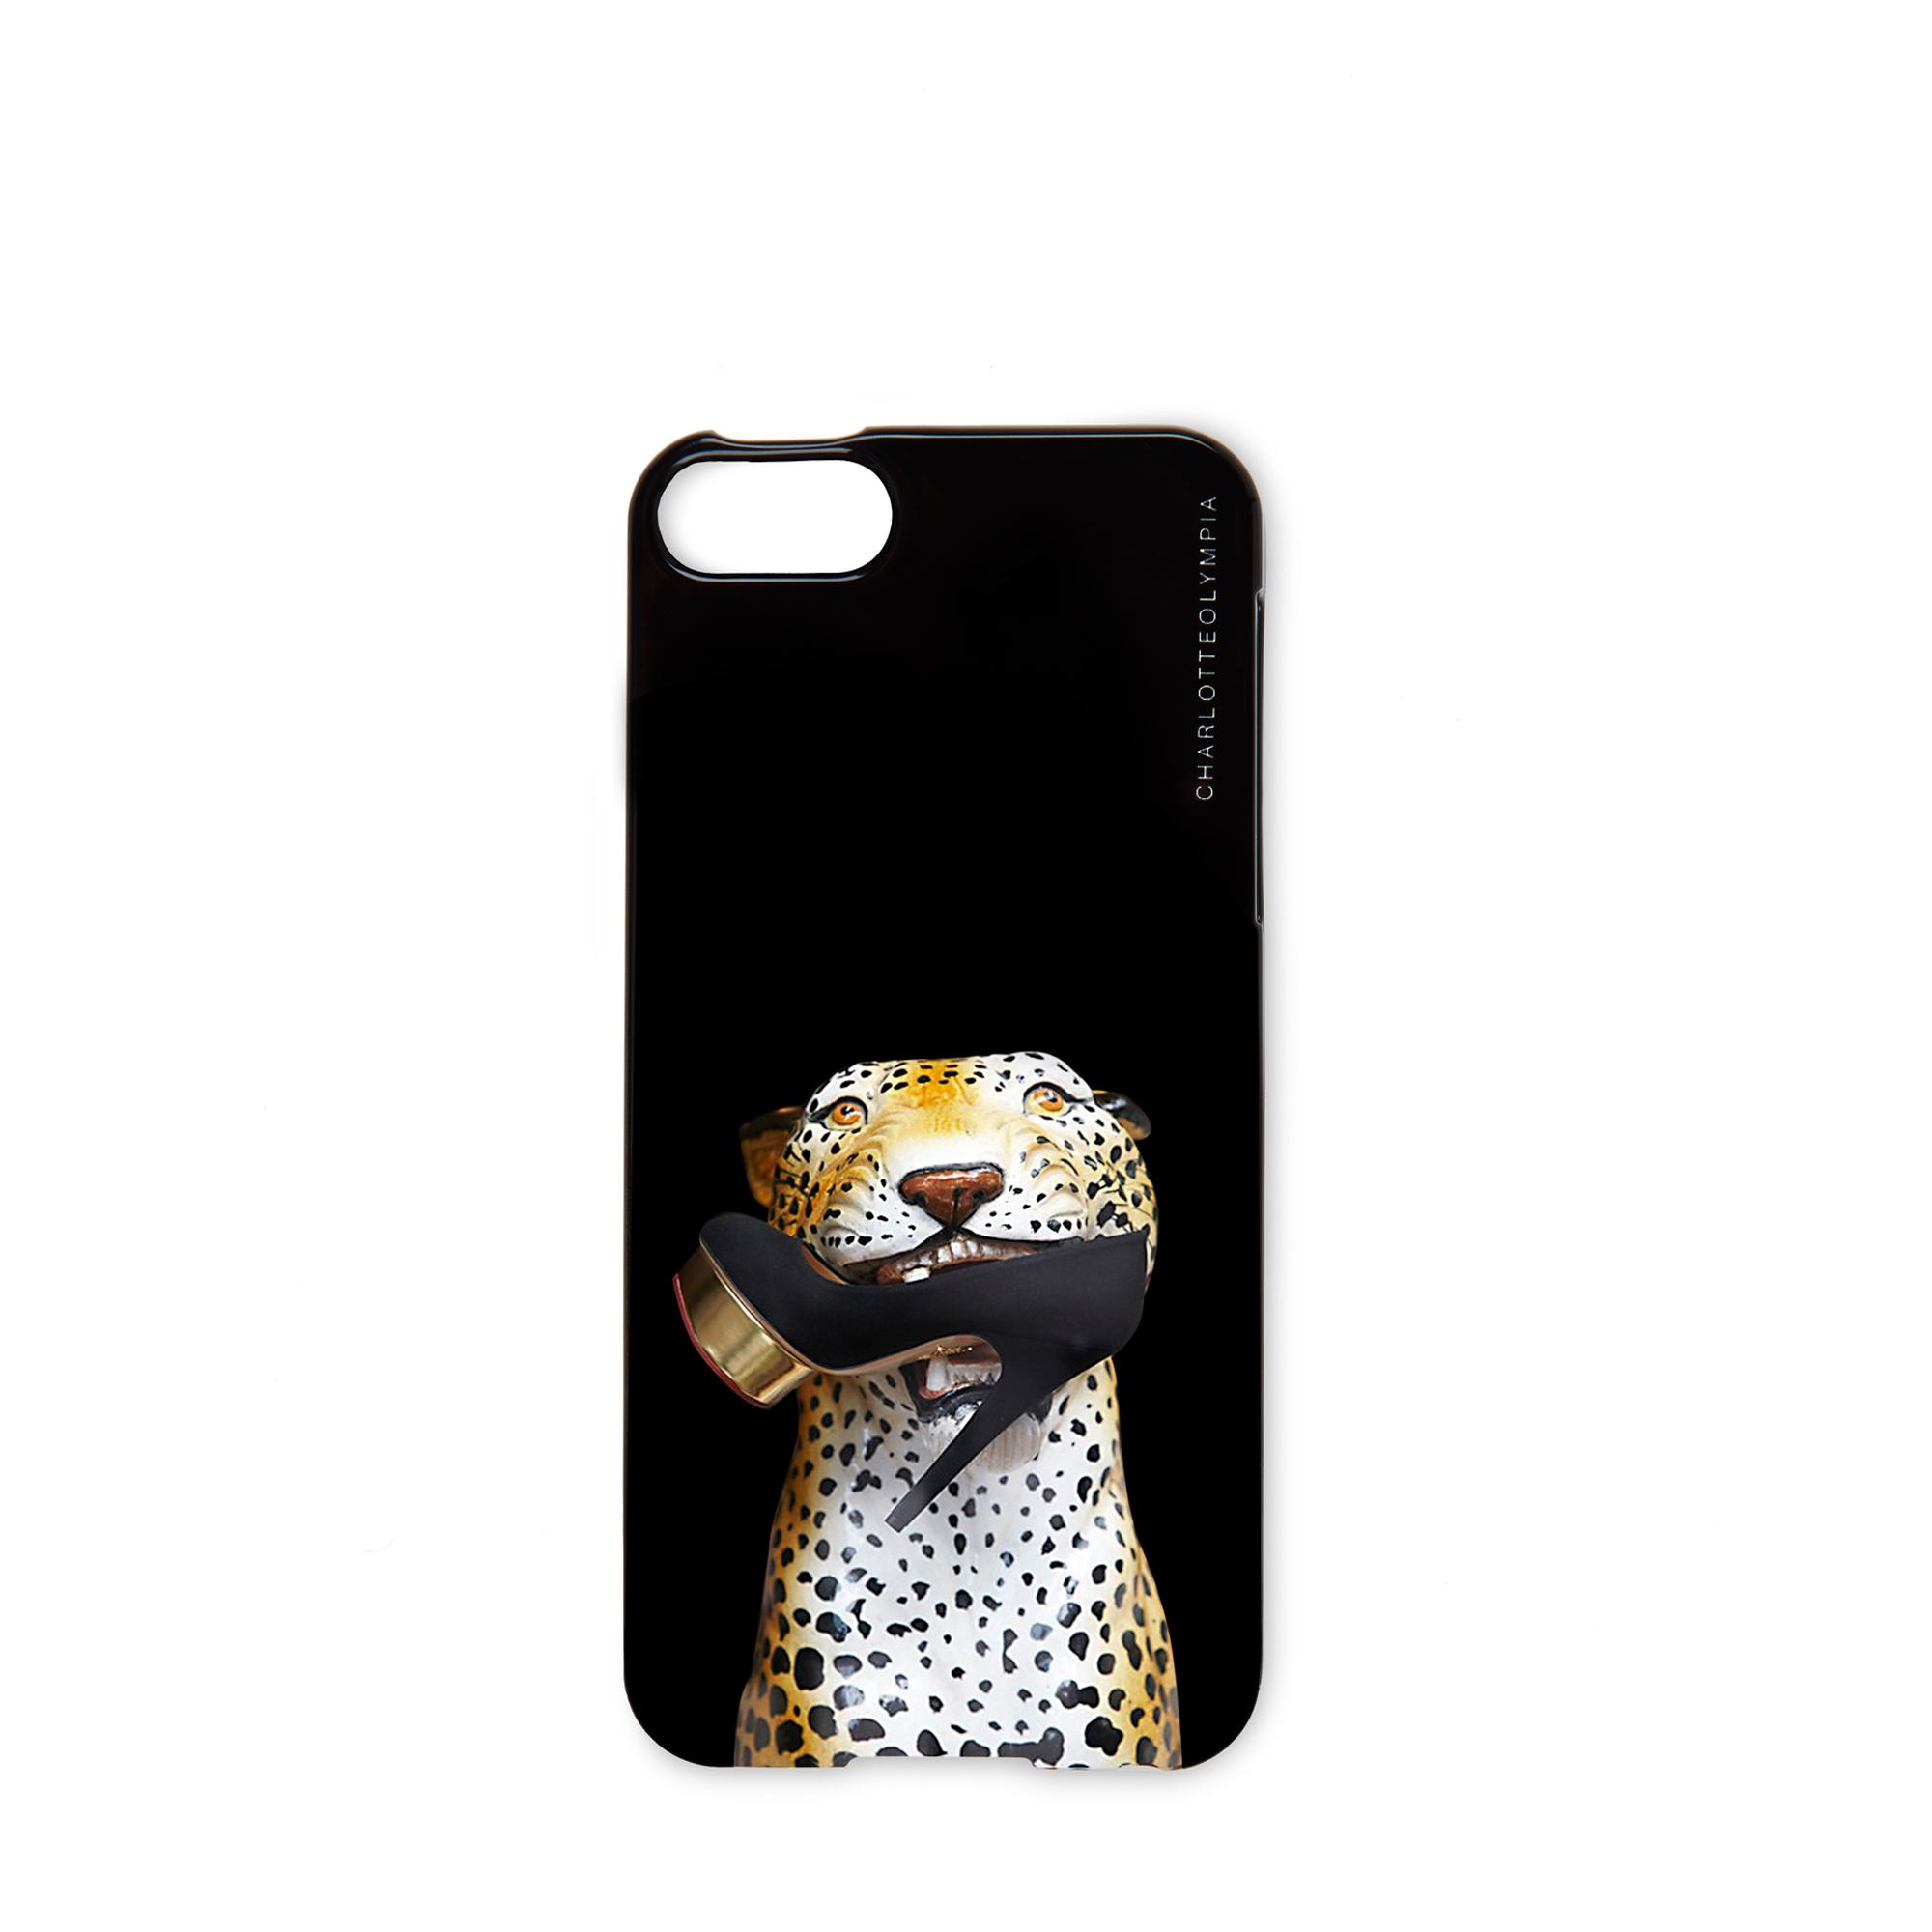 charlotte-olympia-blackleopard-iphone-5-cover-product-1-14933880-090024993